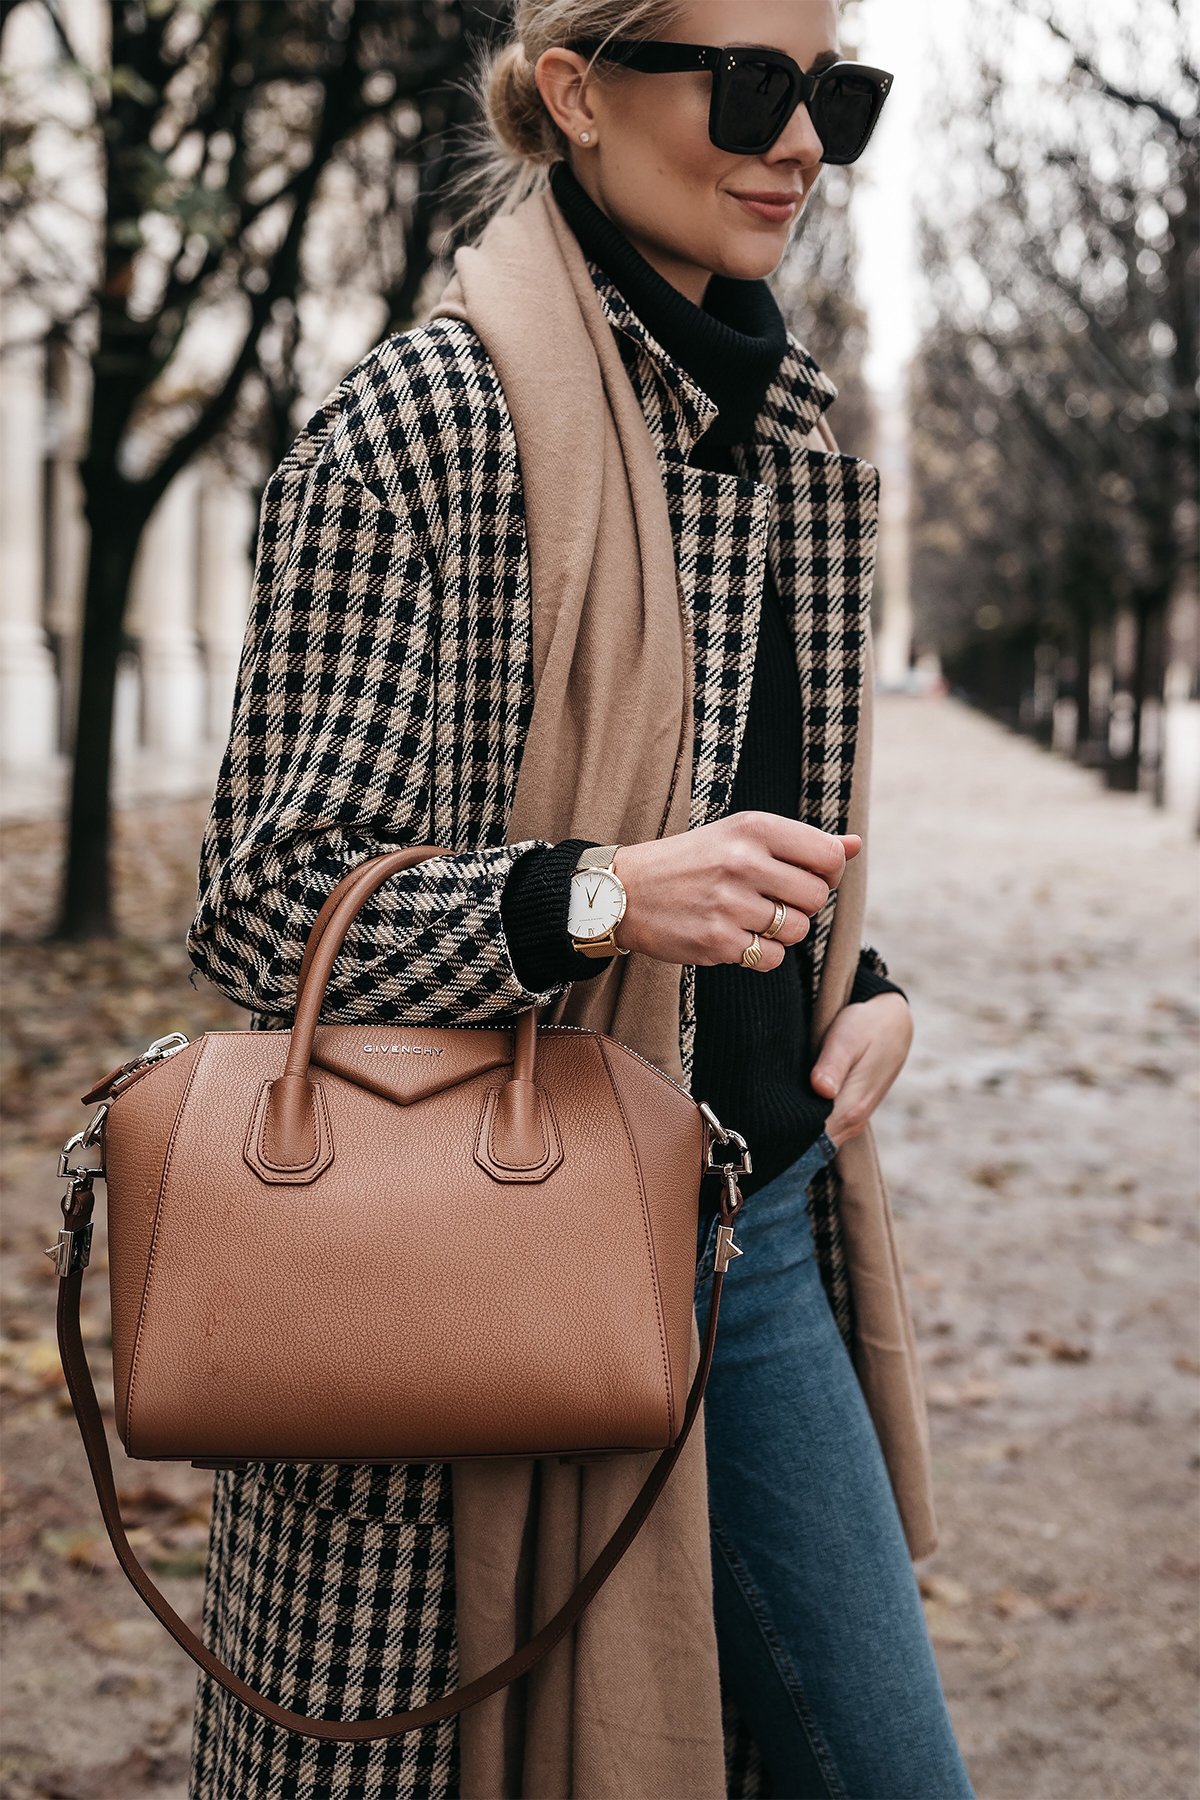 Blonde Woman Wearing Paris France Fall Plaid Check Coat Black Turtleneck Sweater Tan Blanket Scarf Givenchy Antigona Cognac Satchel Fashion Jackson Dallas Blogger Fashion Blogger Street Style